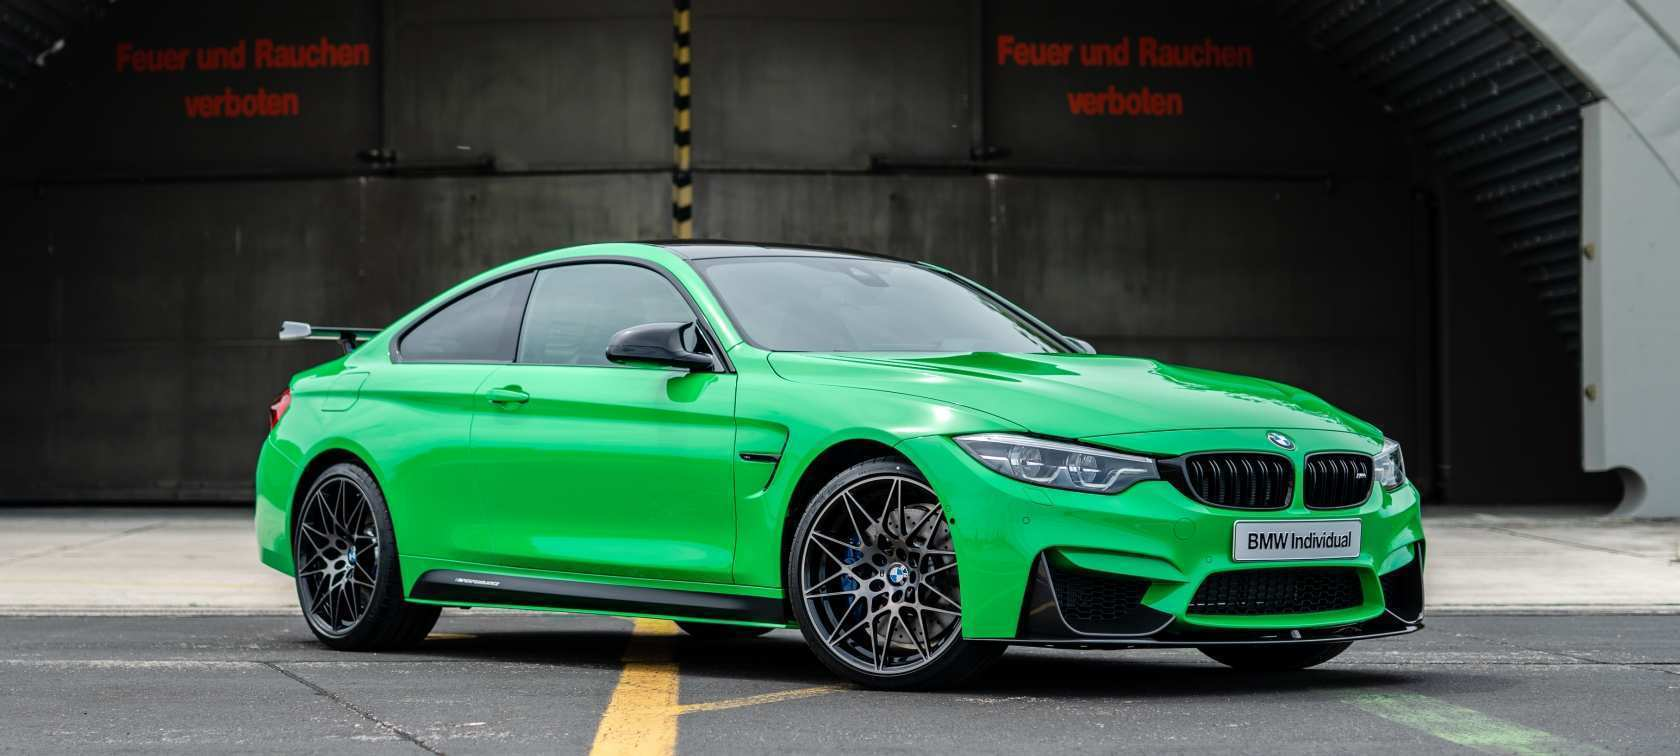 31 All New 2020 BMW M4 Colors Interior by 2020 BMW M4 Colors